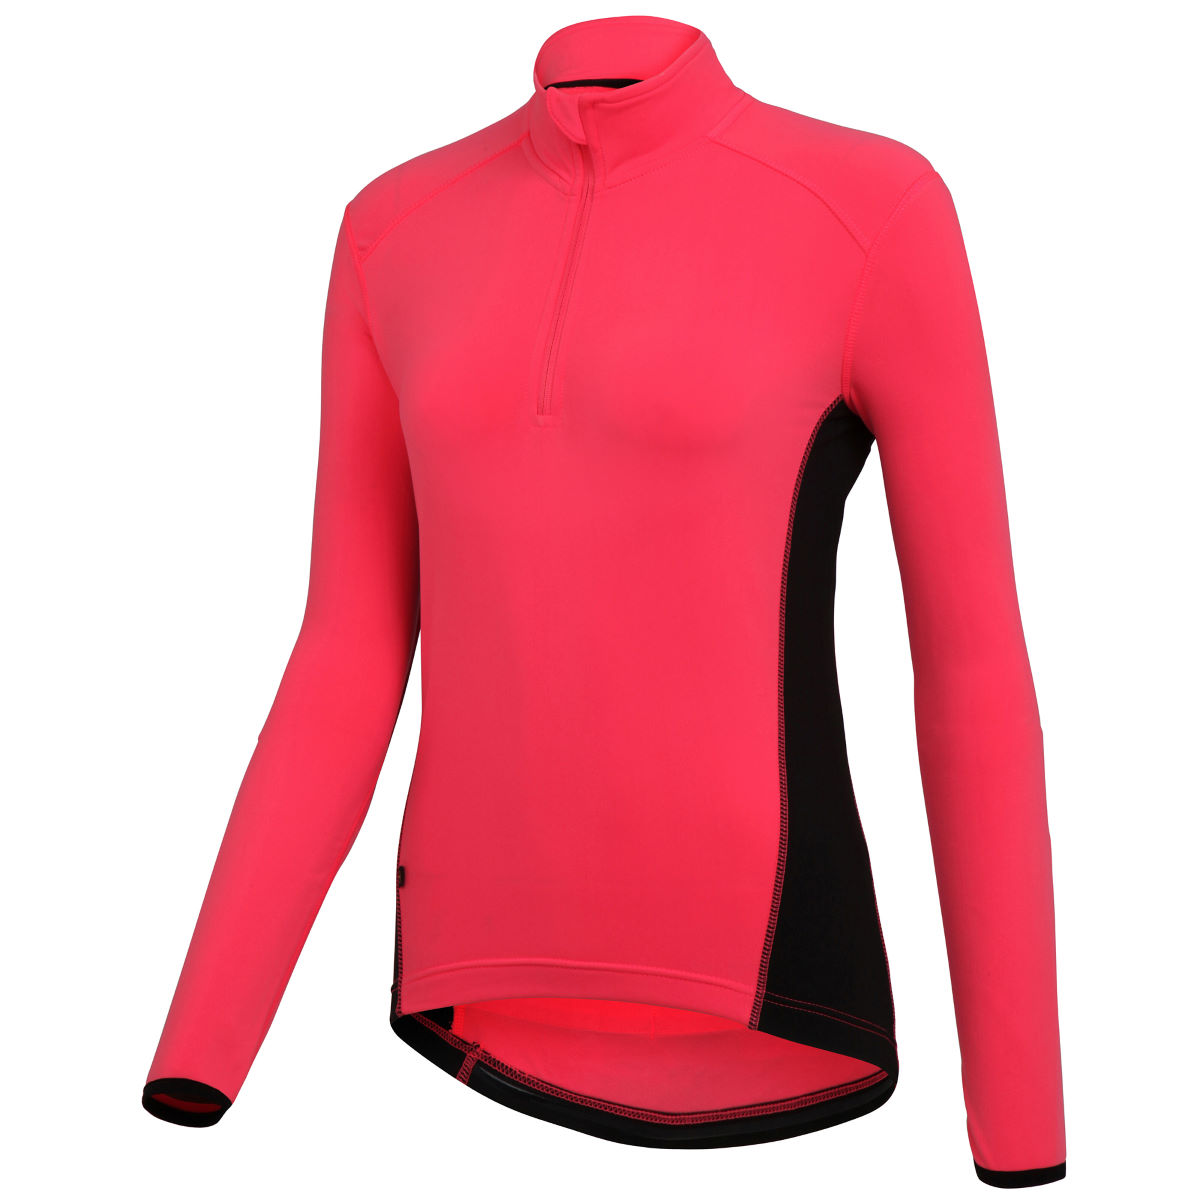 Maillot Femme Wiggle Essentials (manches longues, thermique) - 10 UK